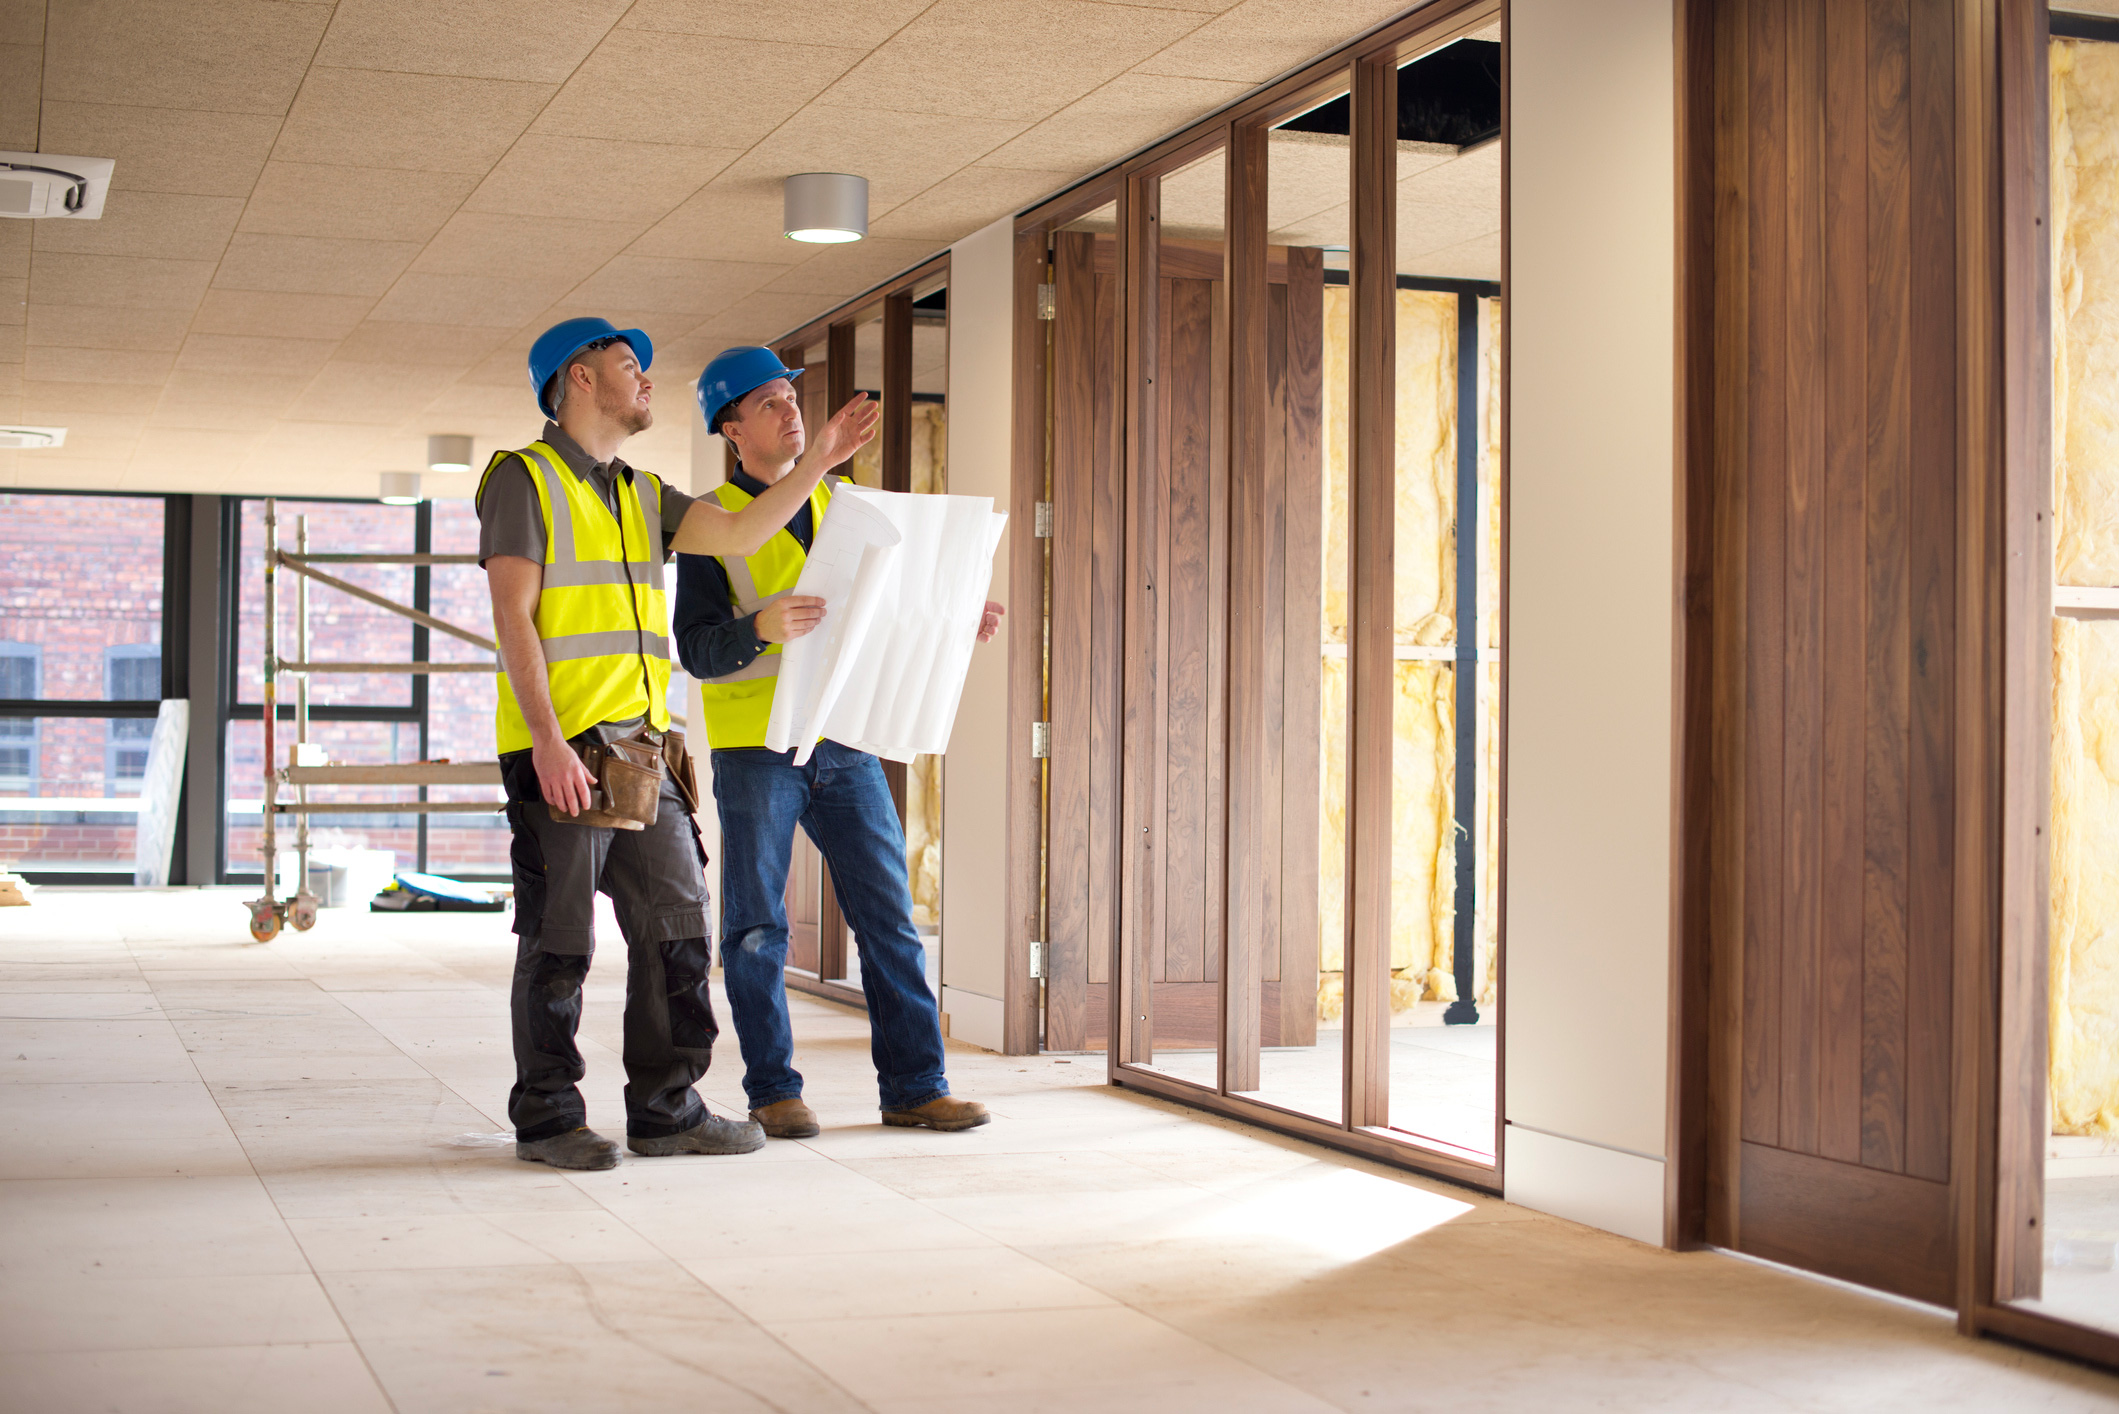 Two construction and building inspectors examine jobsite